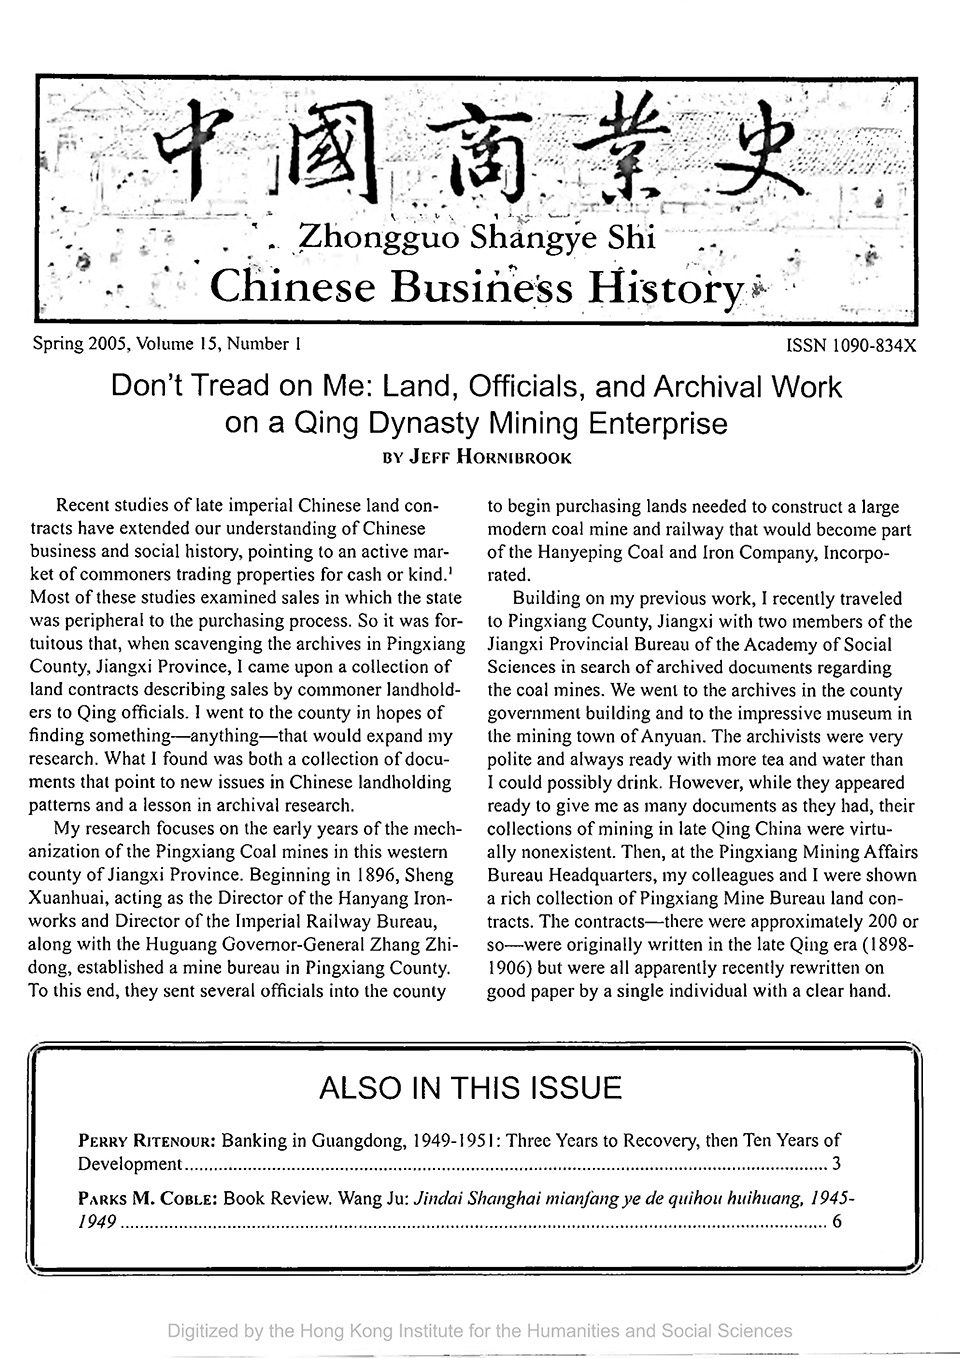 Cover of Chinese Business History Journal Volume 15, Number 1